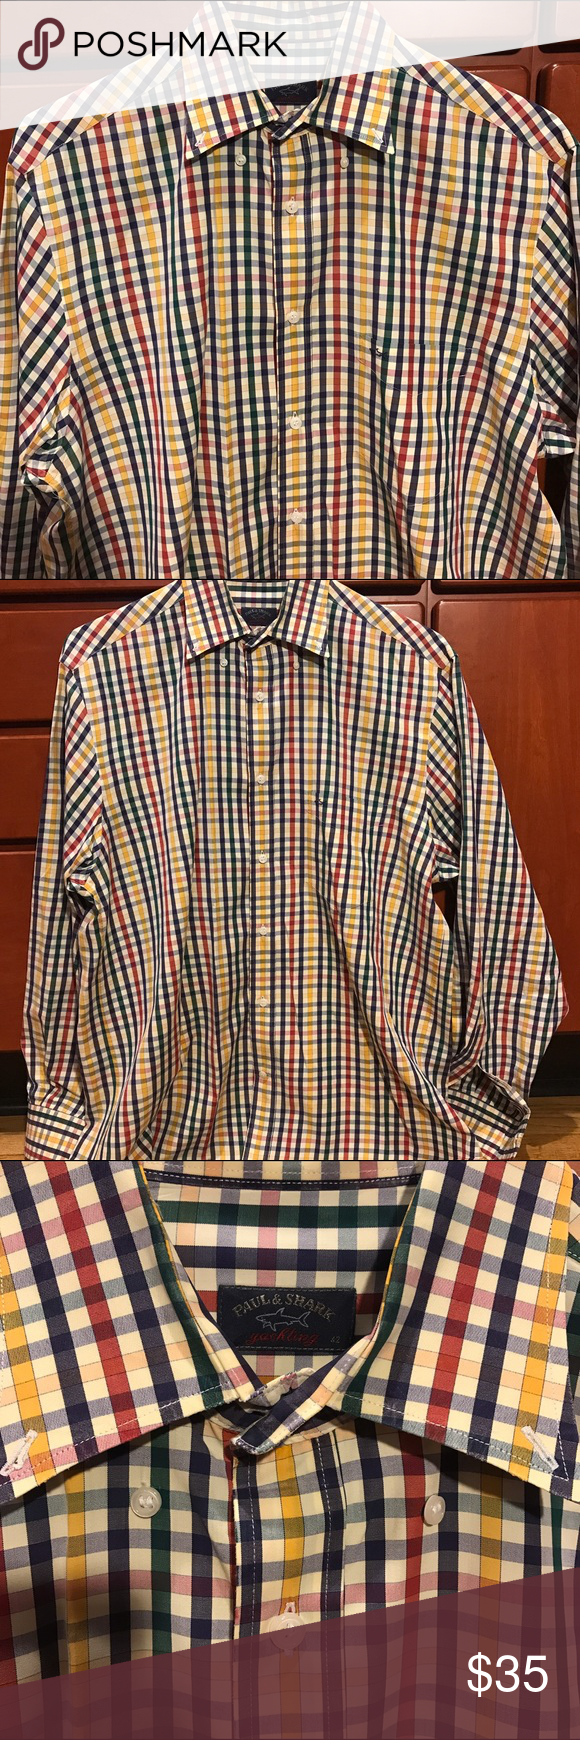 """Paul & Shark Yachting Button Down 100% cotton light weight all flaws that I can find are shown in the pictures size 42 made in Italy straight from being dry cleaned length is 31""""  across is 25"""" Paul & Shark Shirts Casual Button Down Shirts"""